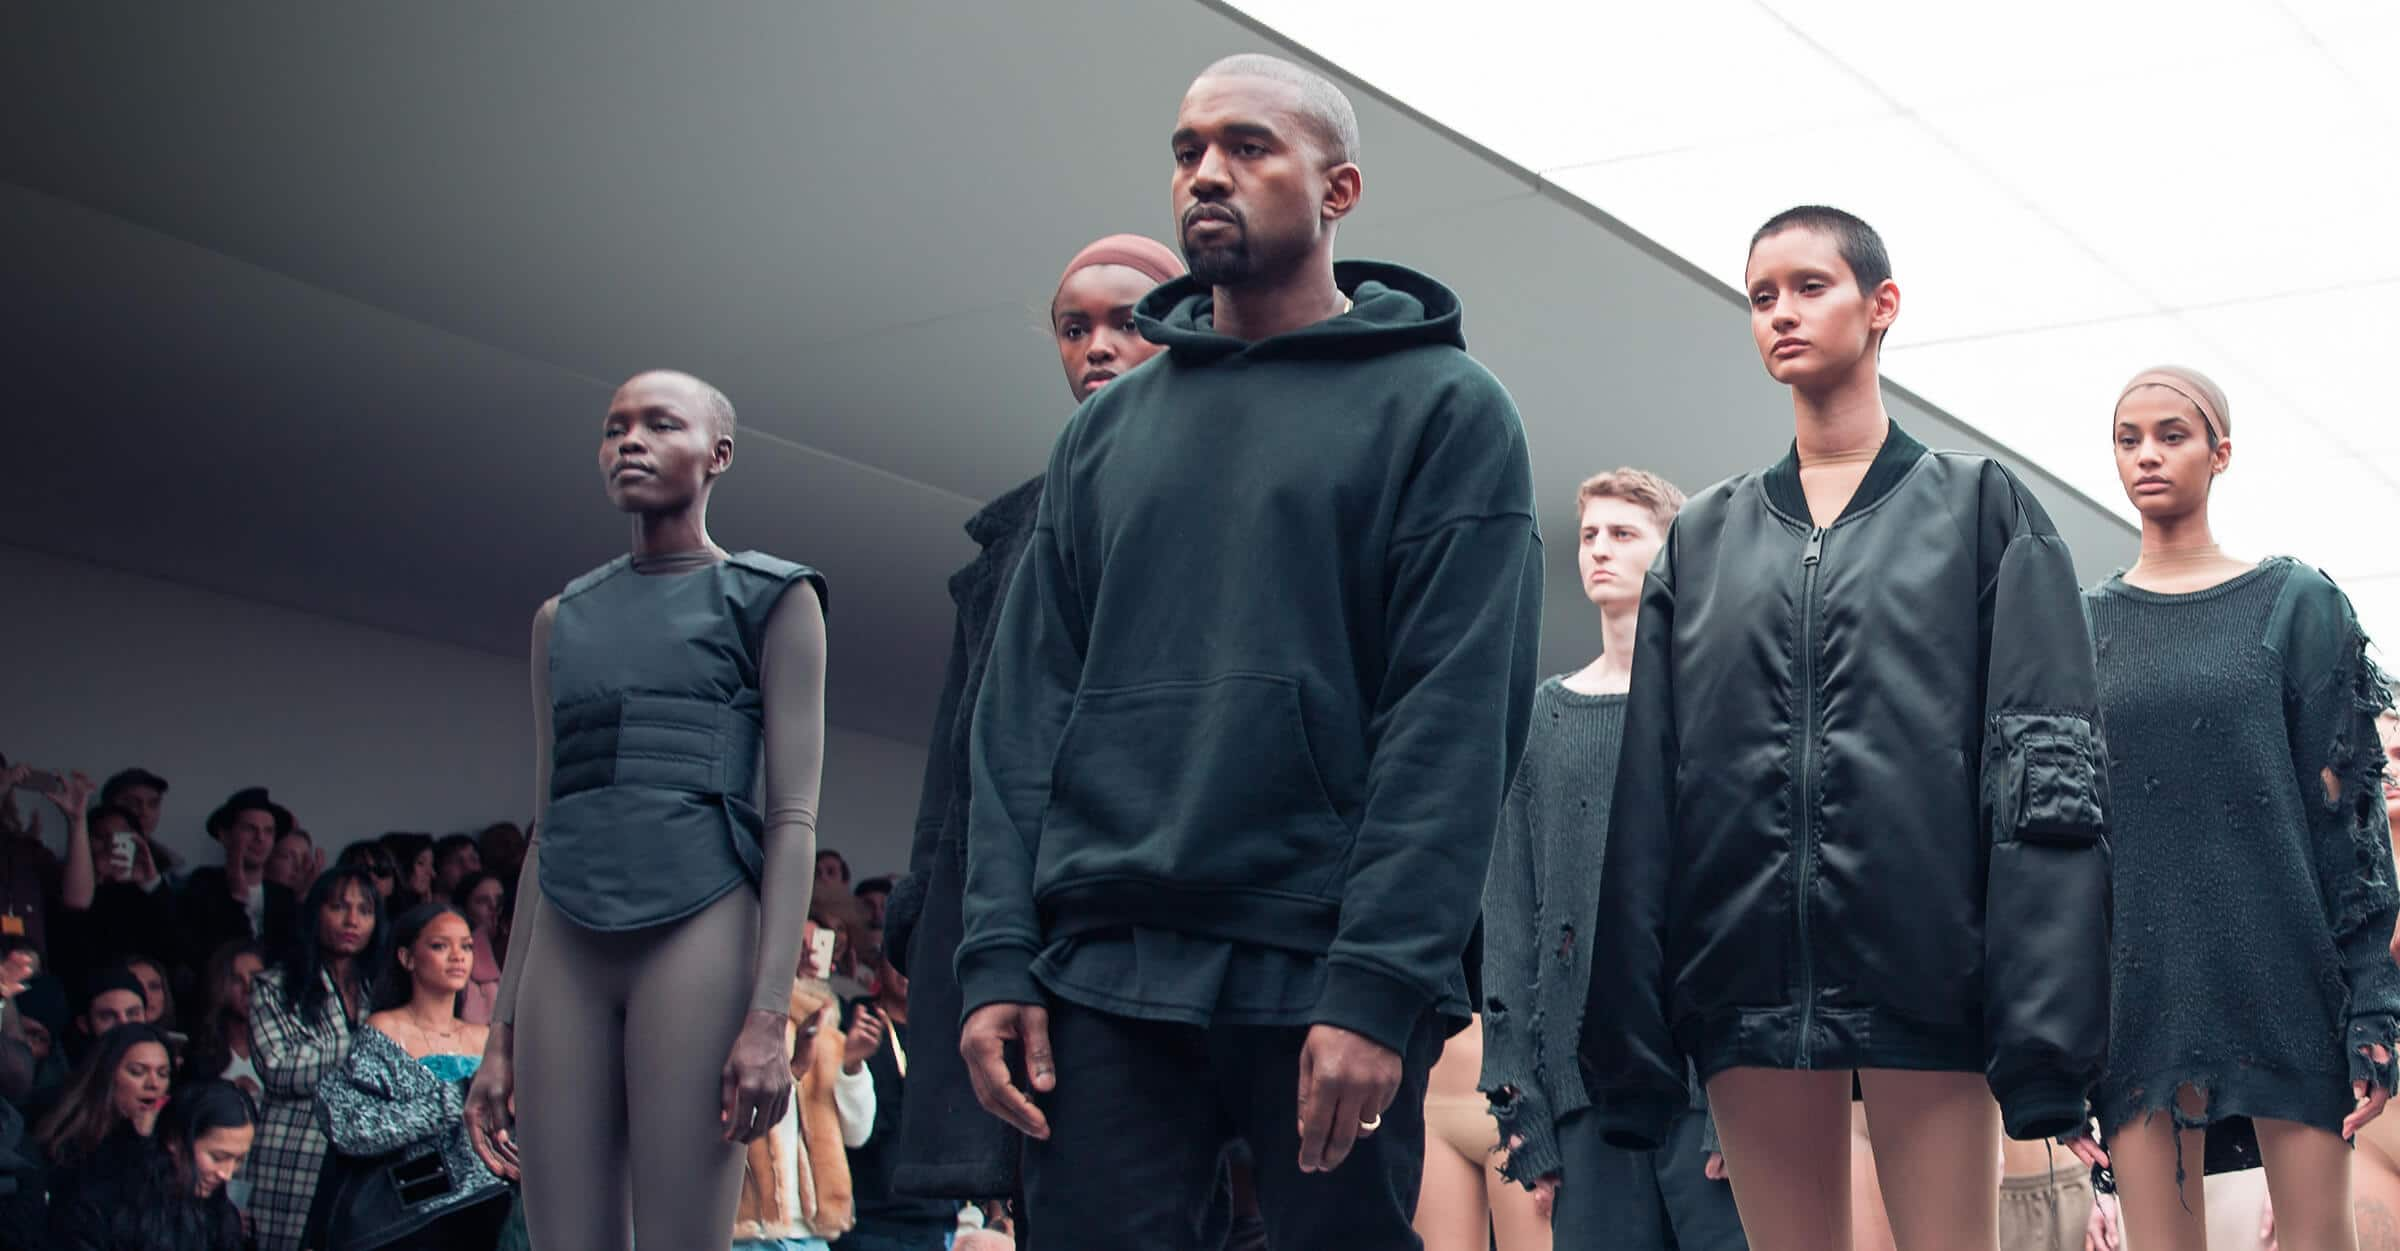 KANYE WEST FASHION LEGACY